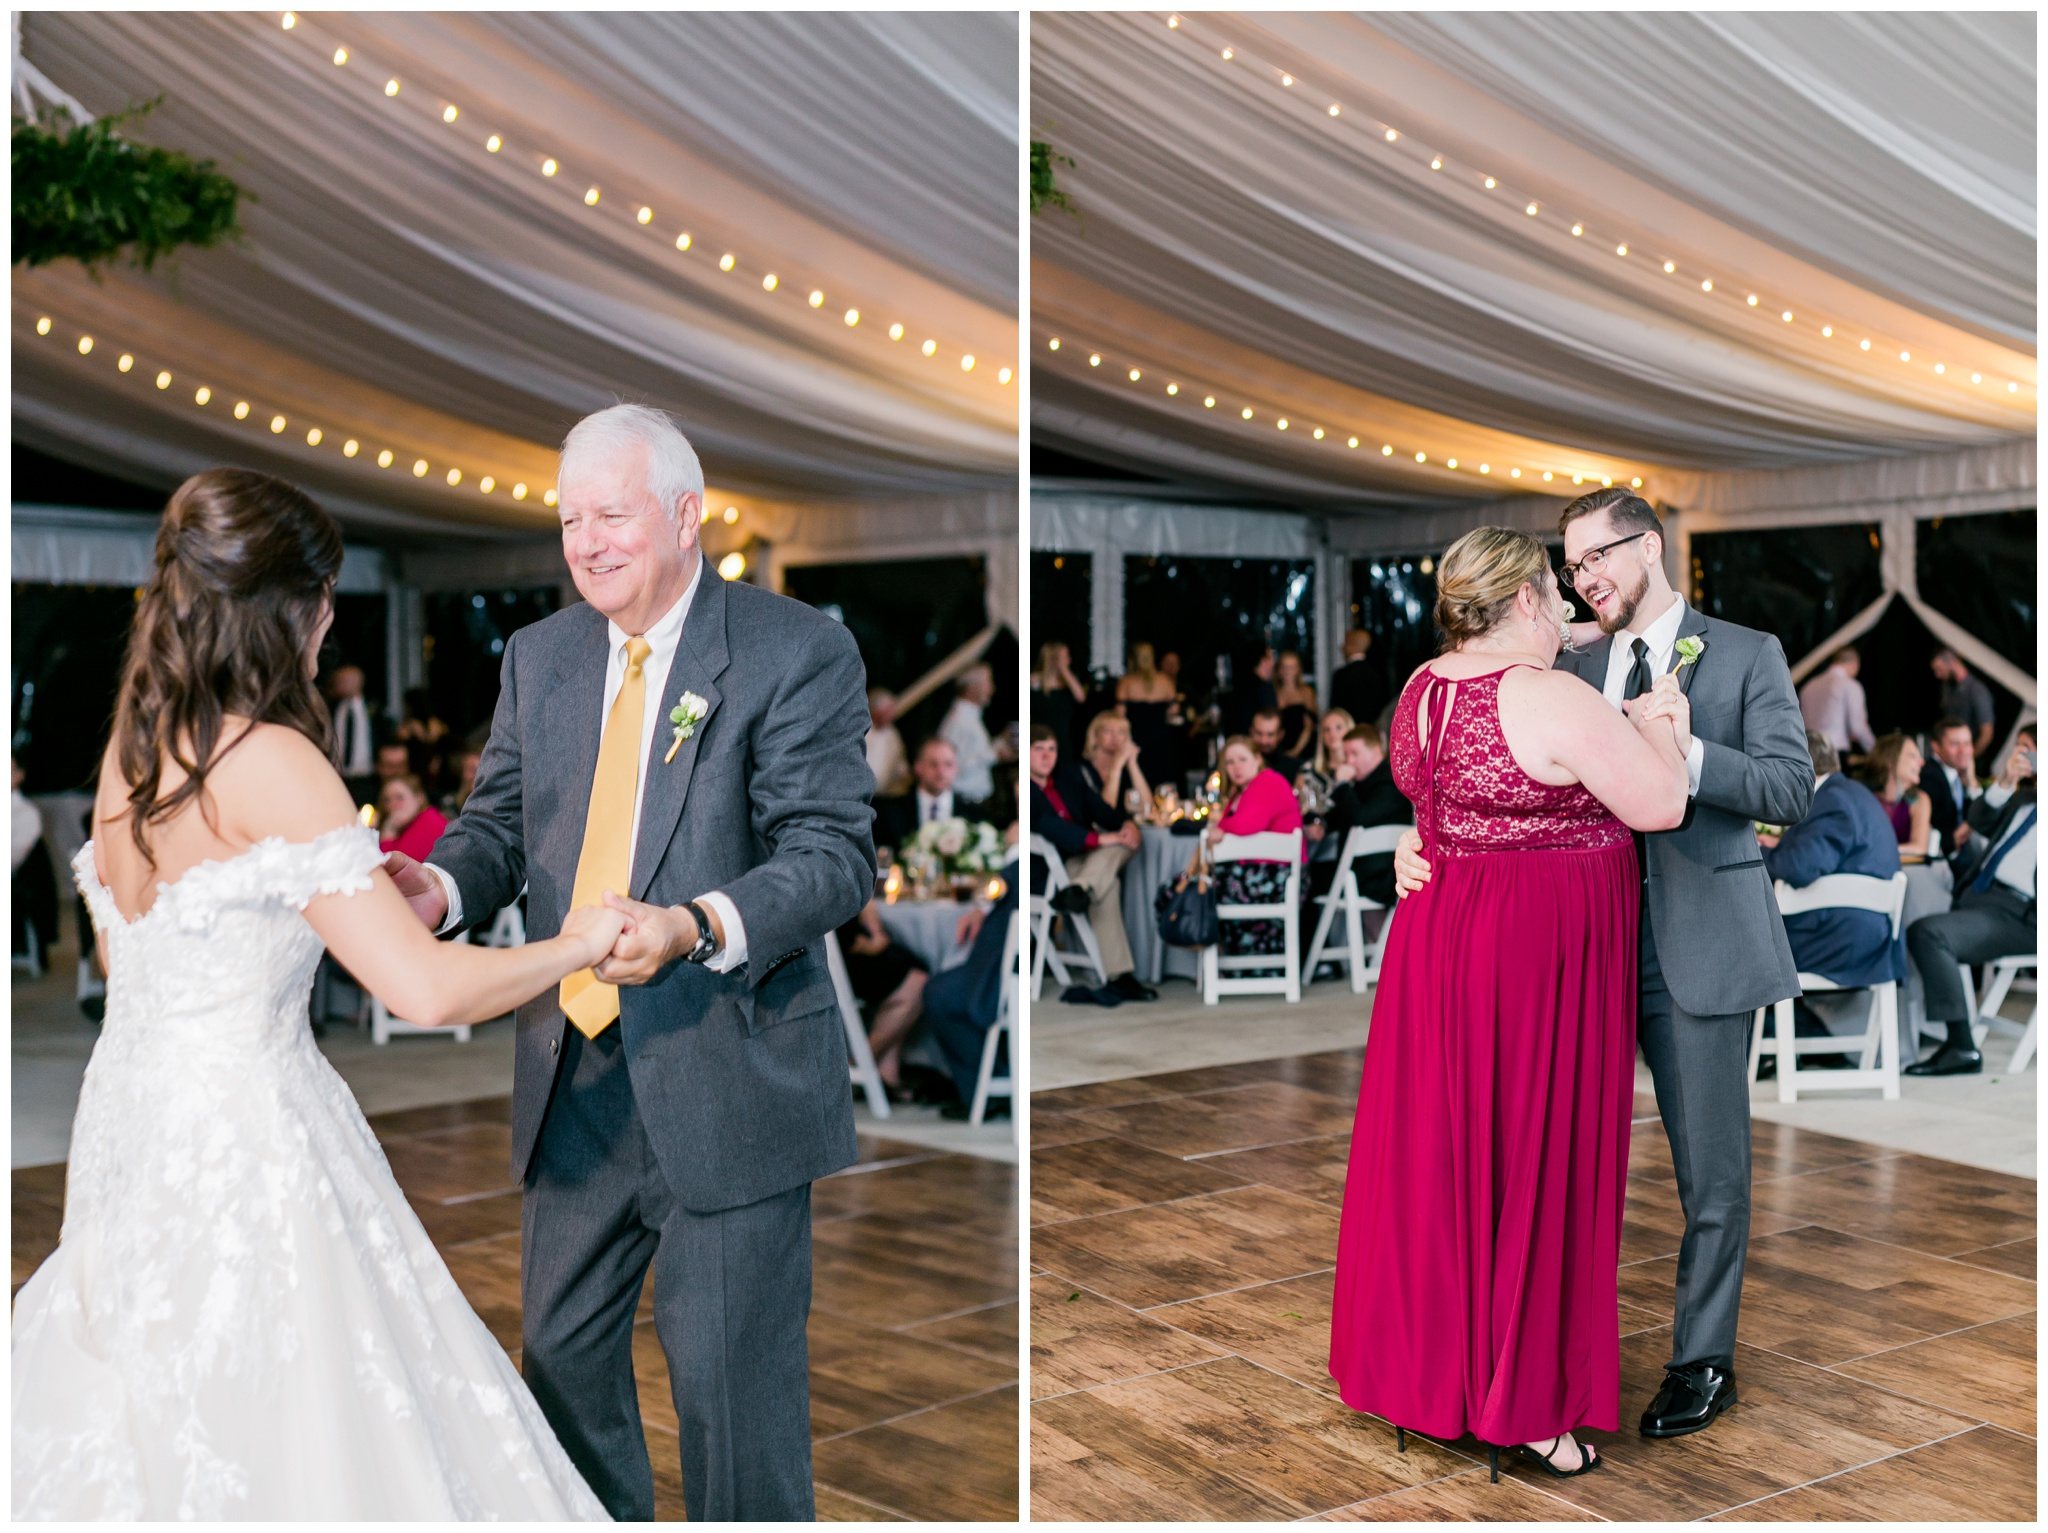 bishops_bay_country_club_wedding_middleton_wisconsin_caynay_photo_4748.jpg